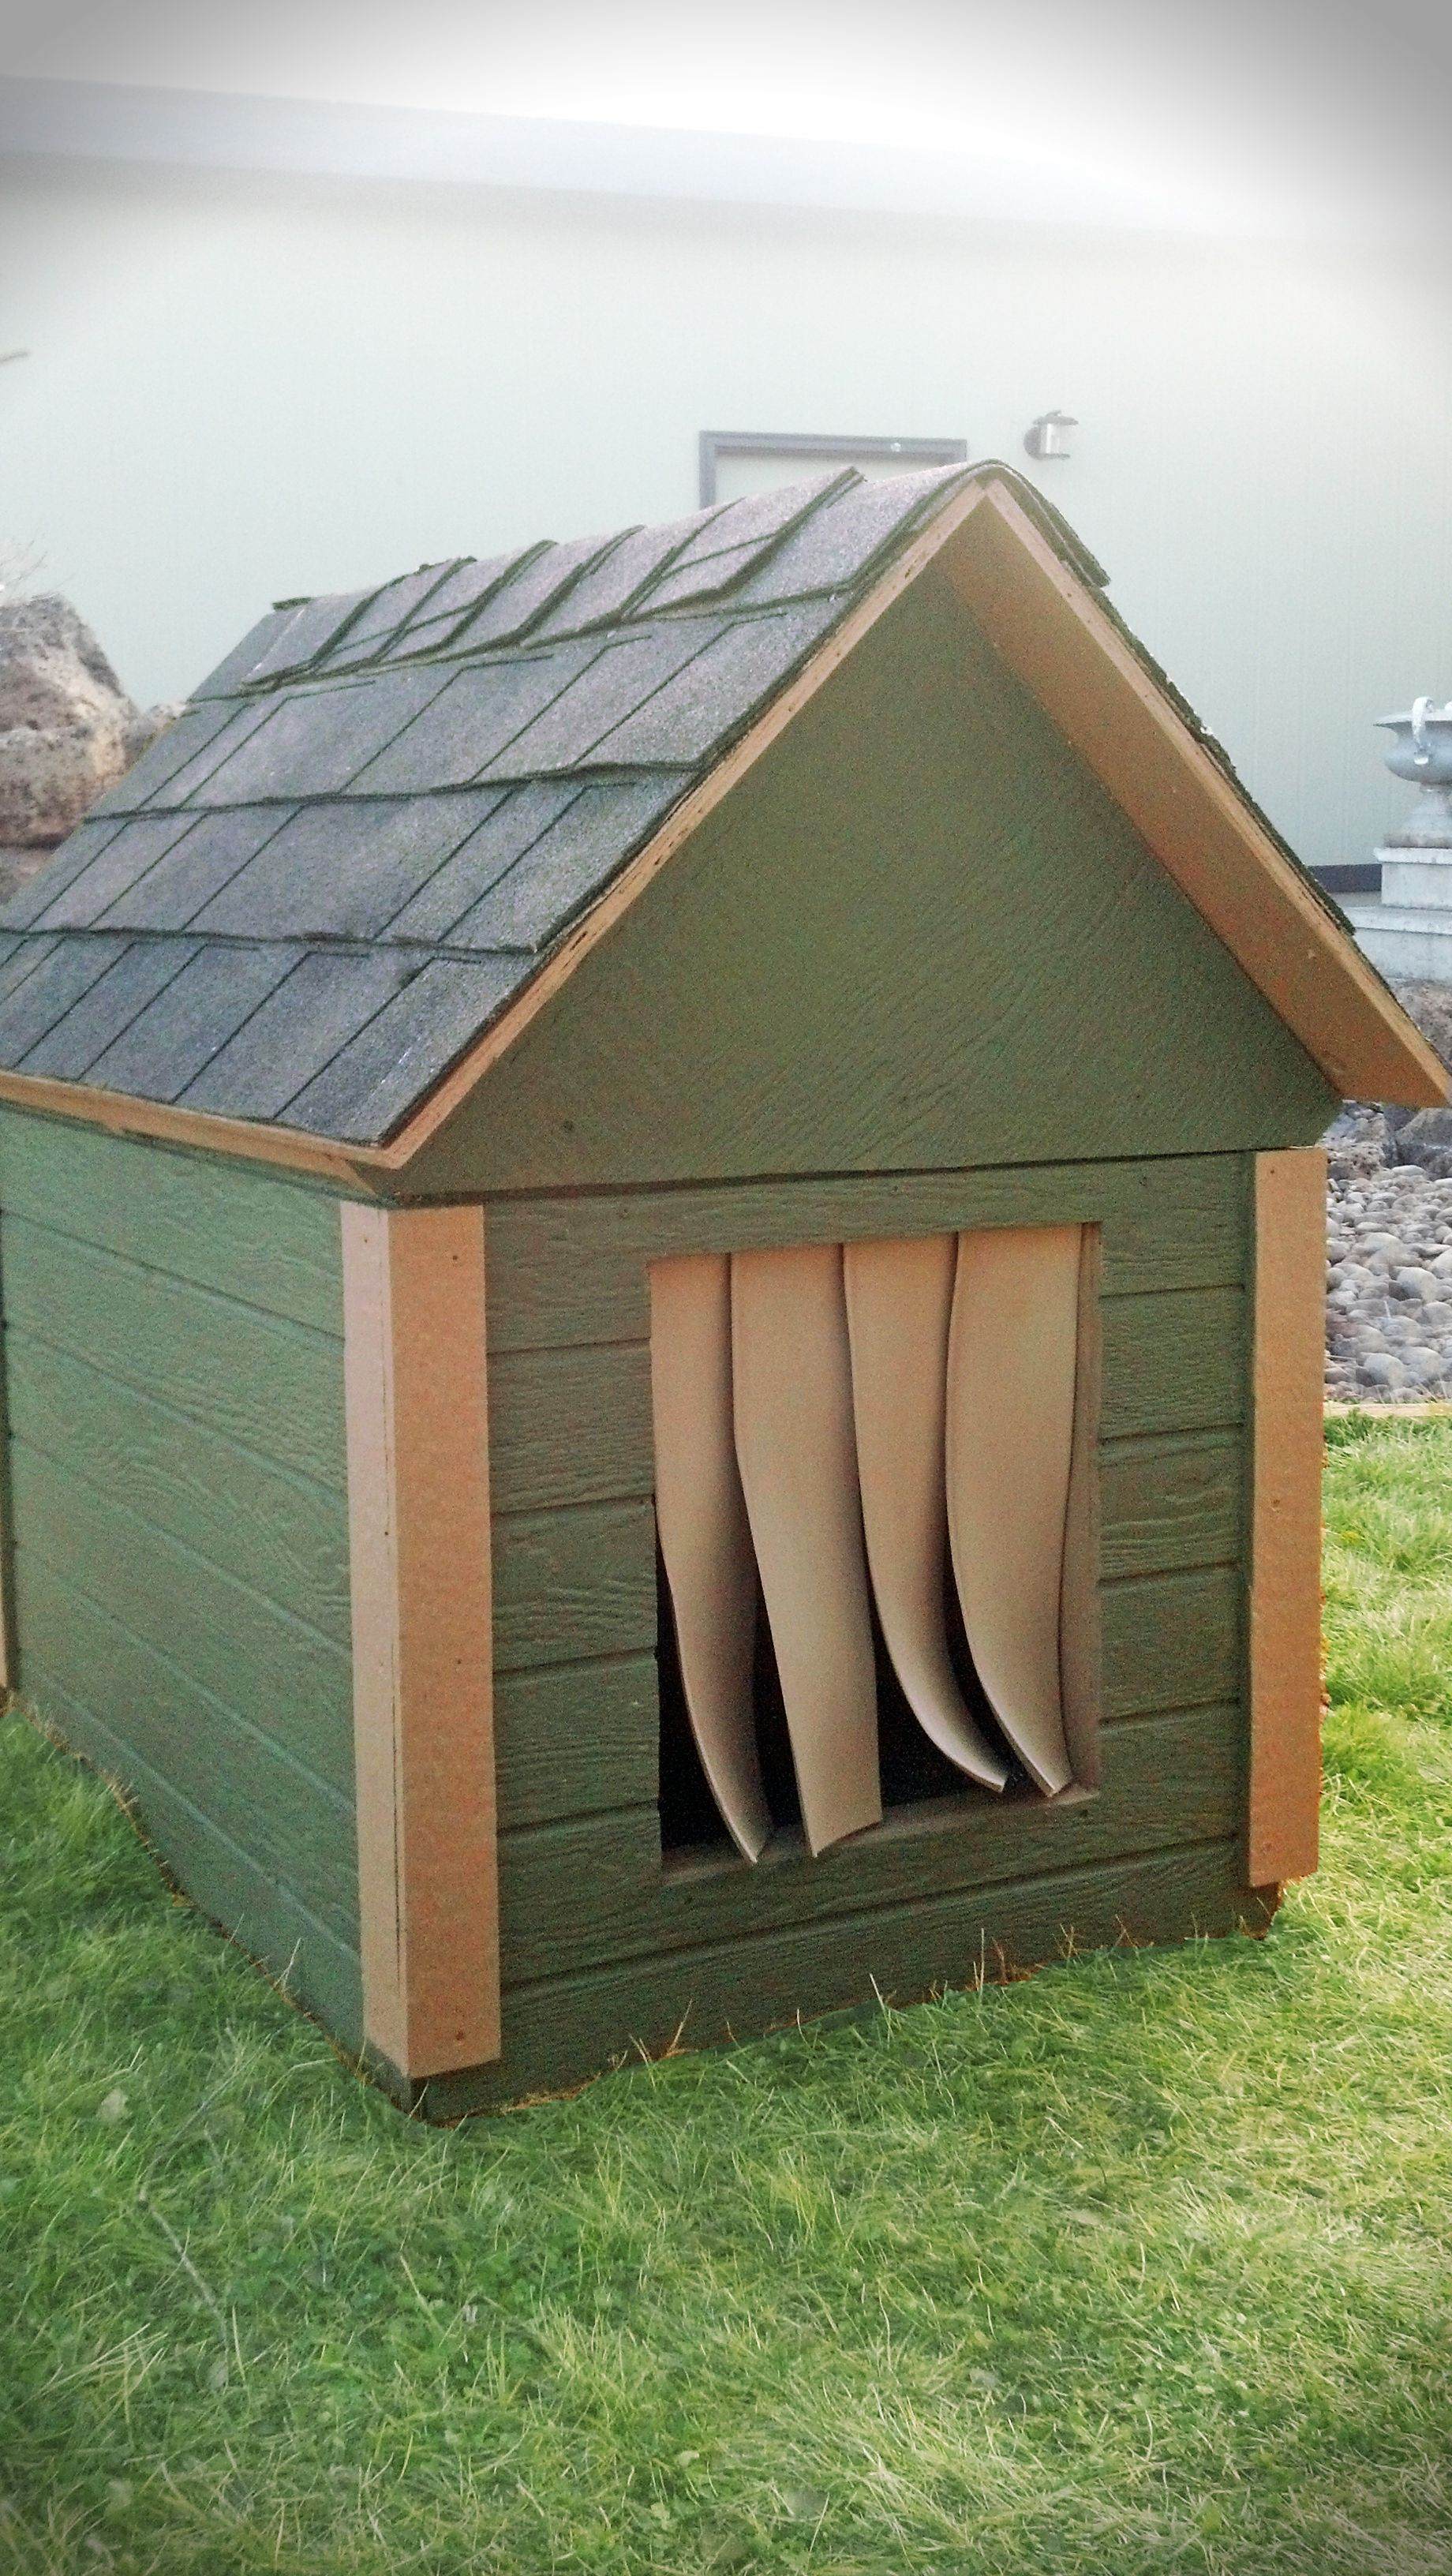 Cozy Insulated Dog House To Keep Your Best Friend Warm In The